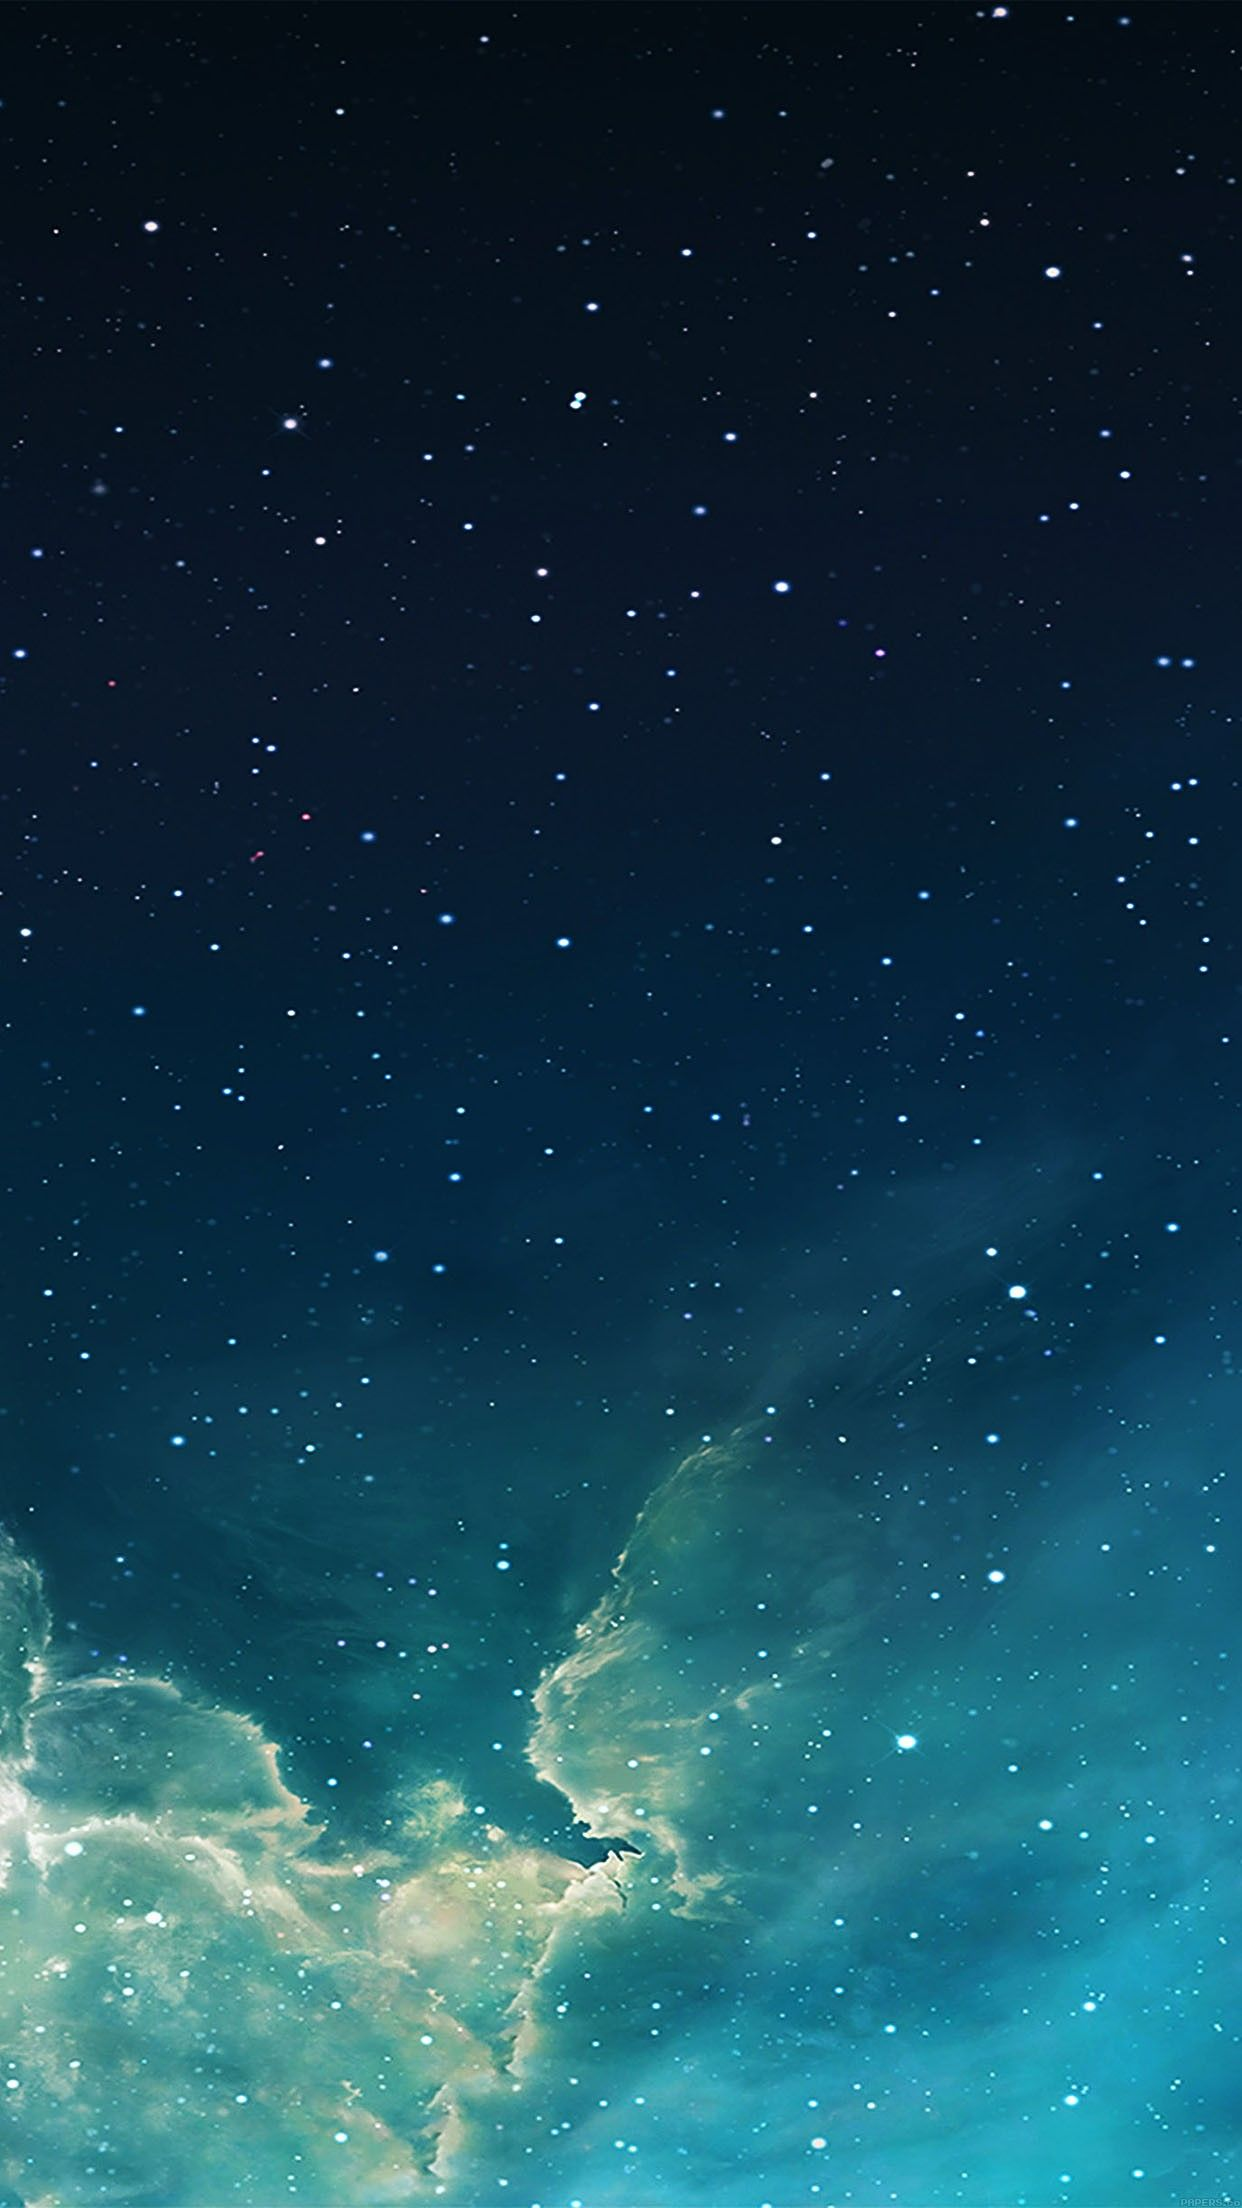 Wallpaper galaxy blue 7 starry star sky iphone 6 plus wallpapers daily best